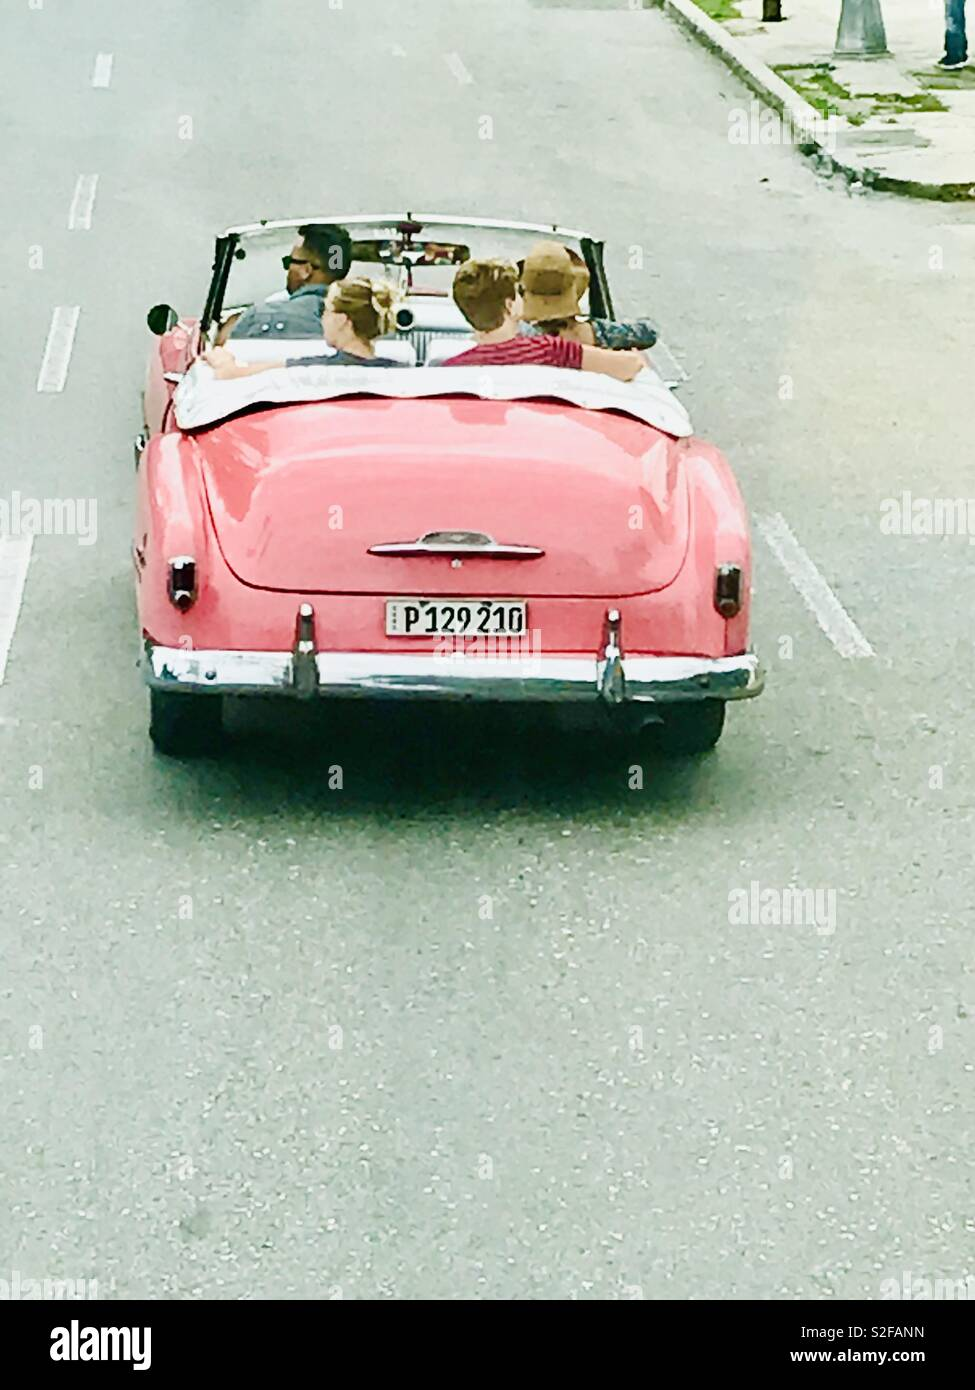 Classic pink Chevrolet cruising with the roof top down along the streets of Havana Cuba - Stock Image